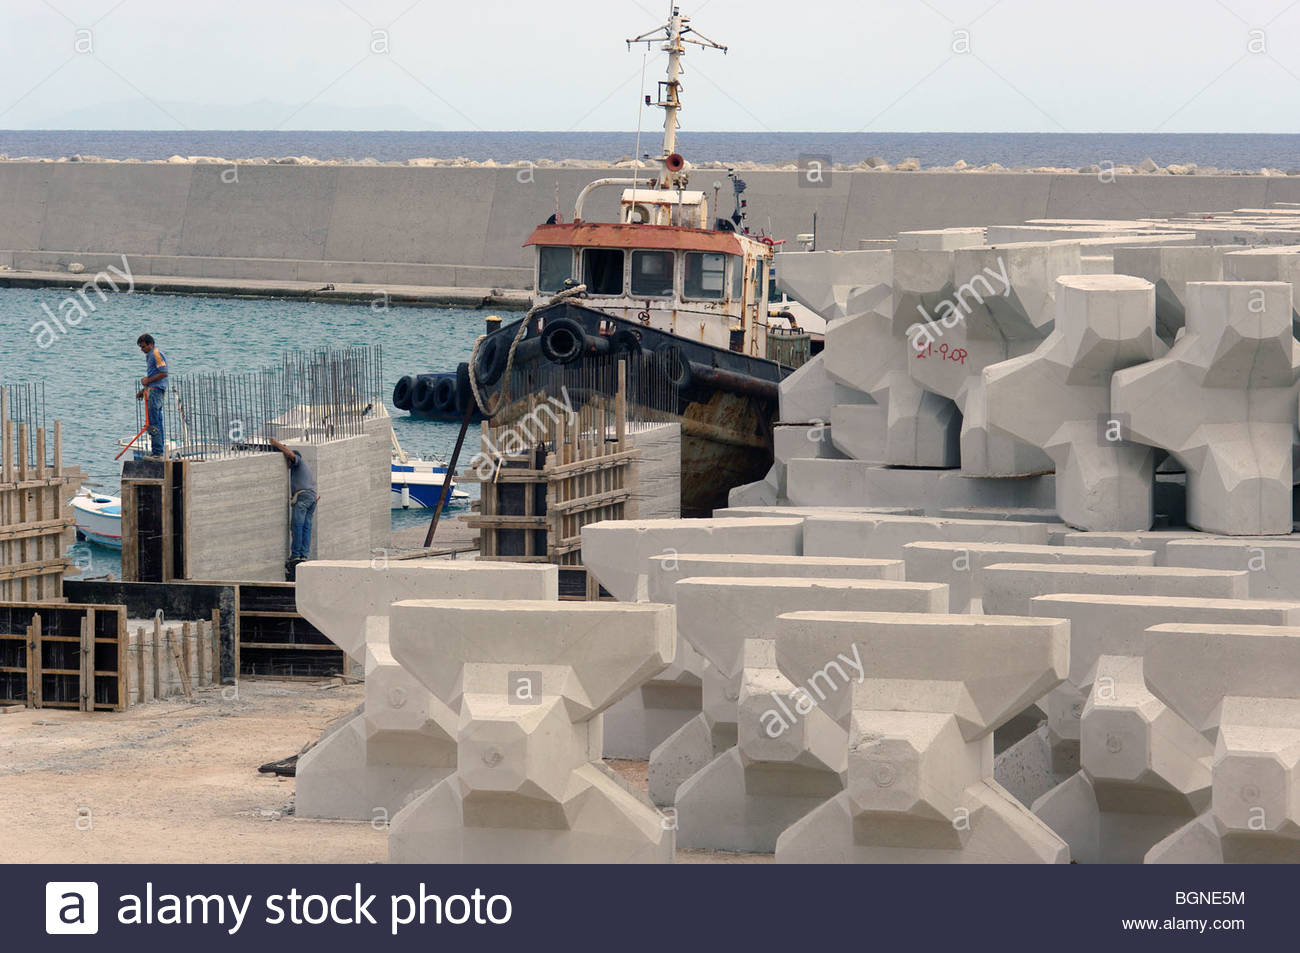 Cement Beton Building A Port In Greece Using Reinforced Concrete Caltrops